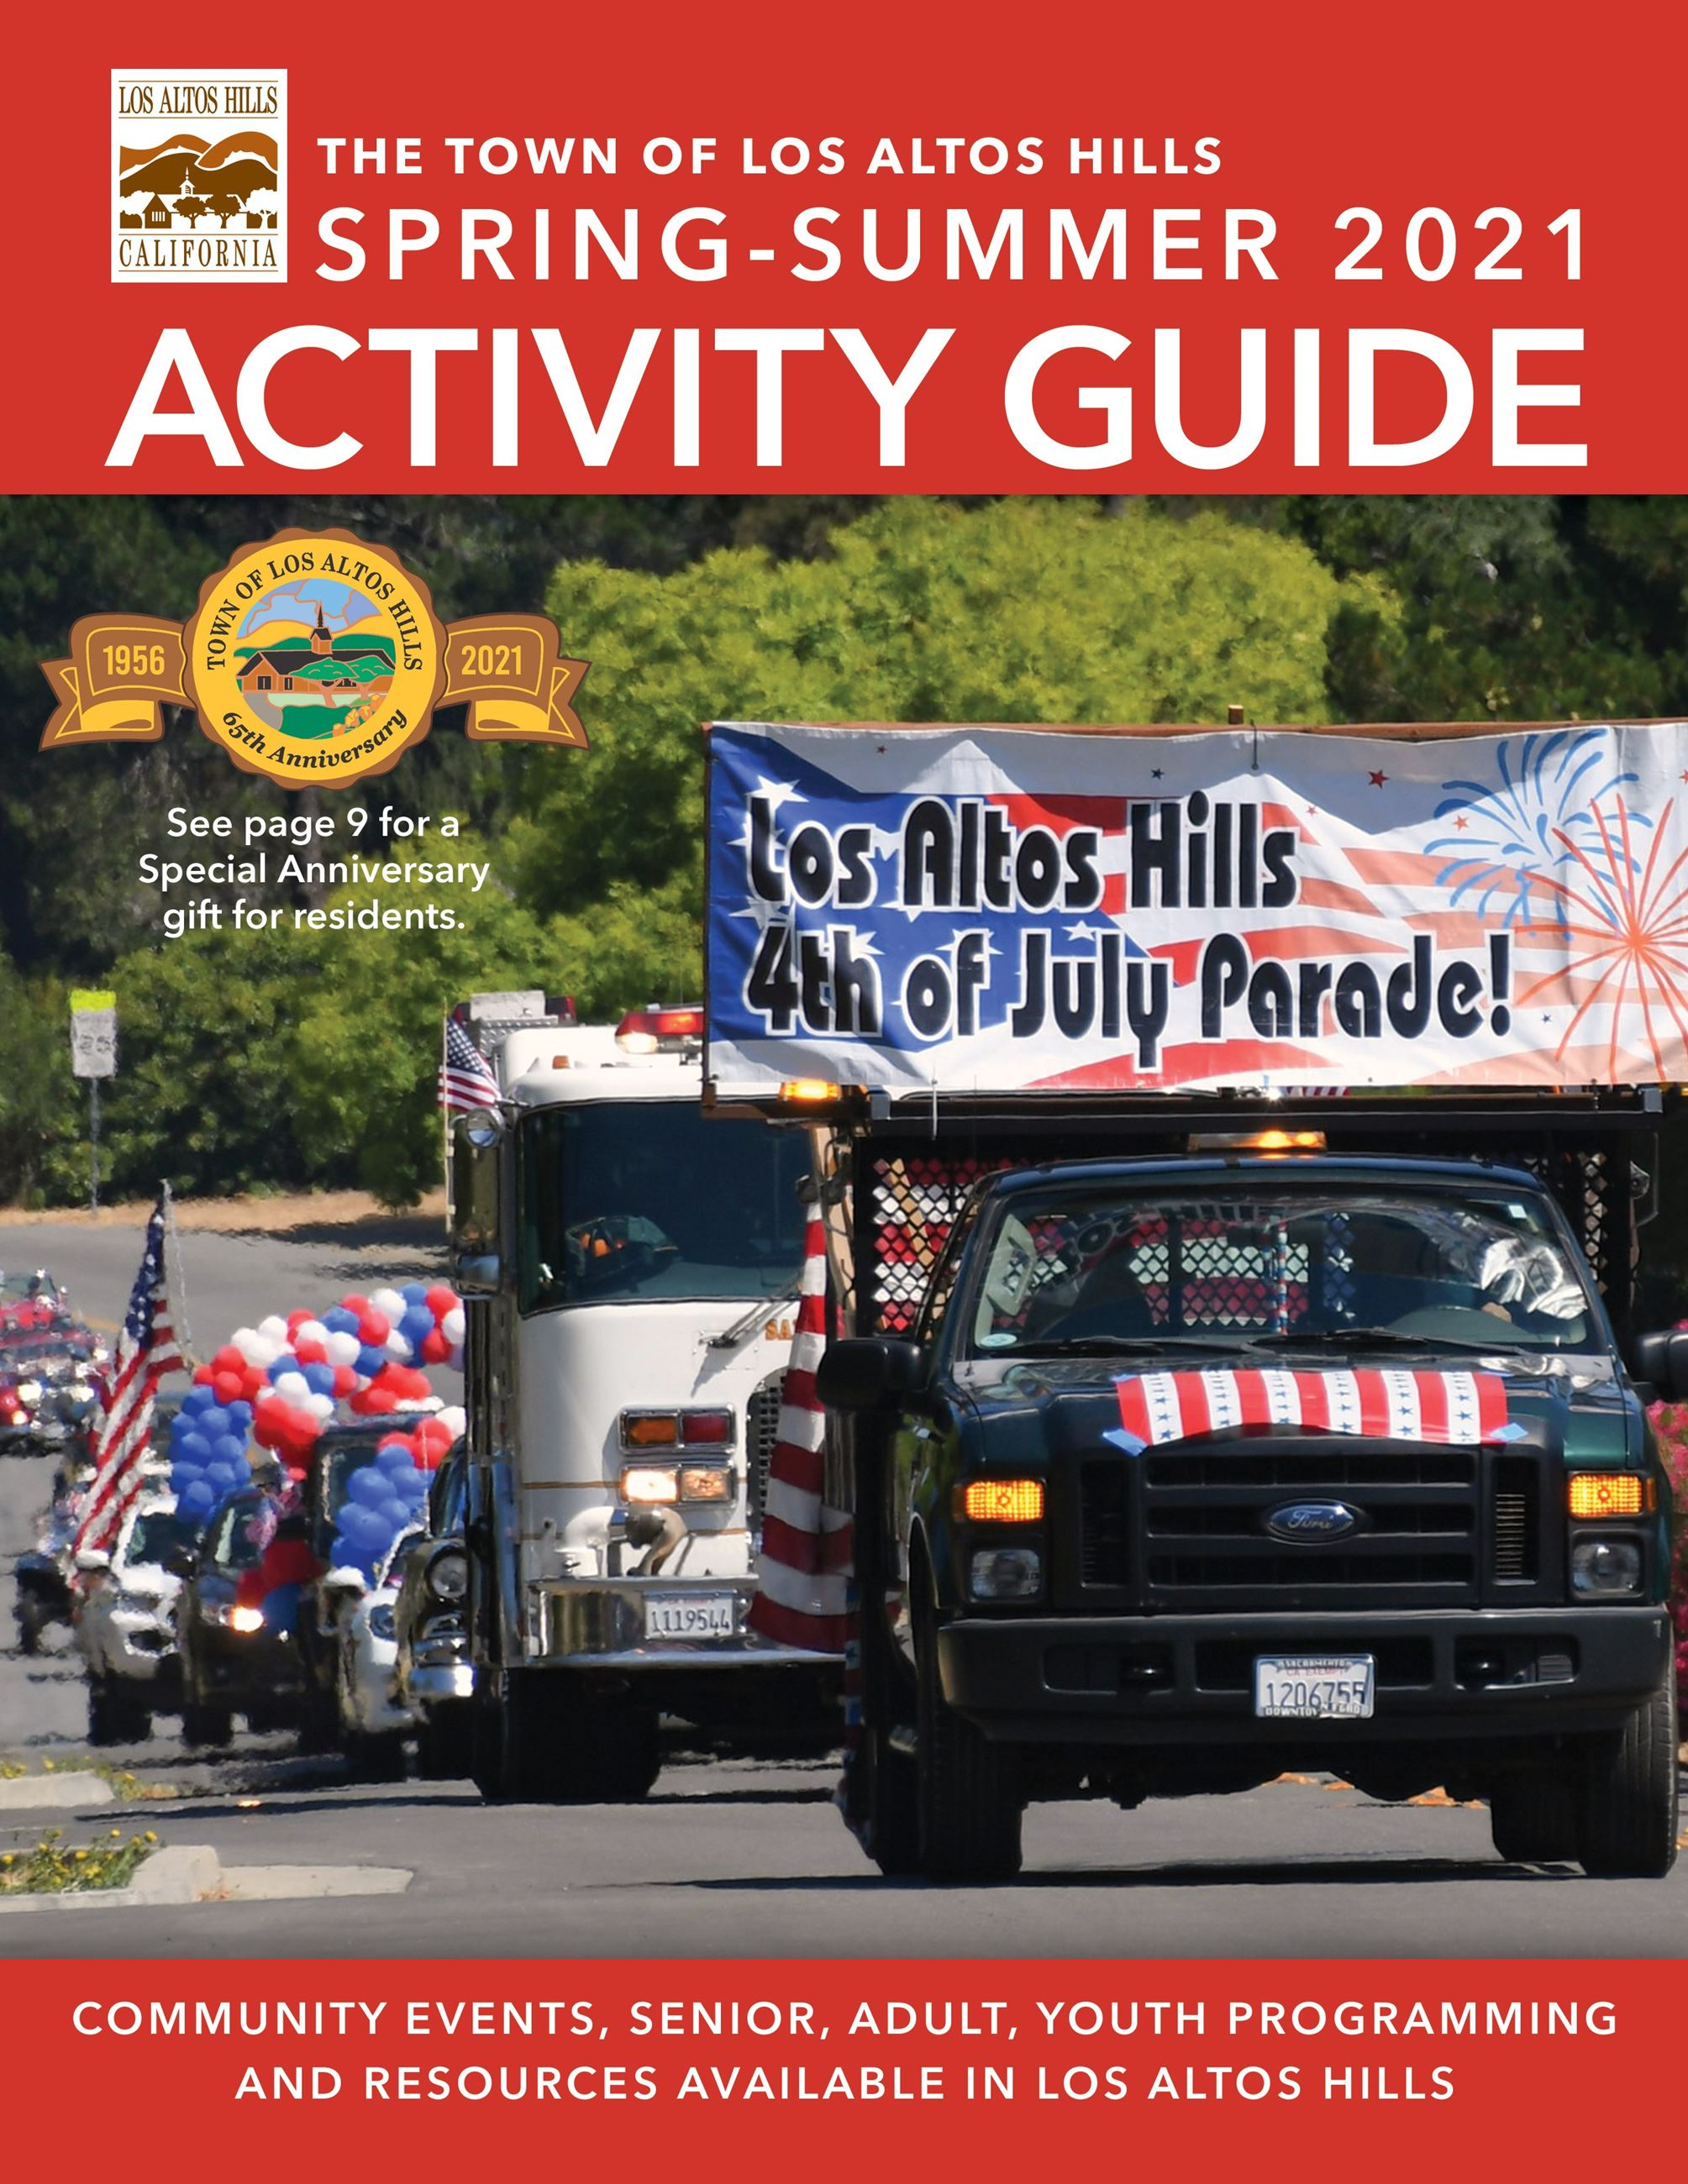 Spring Summer 2021 Activity Guide Cover